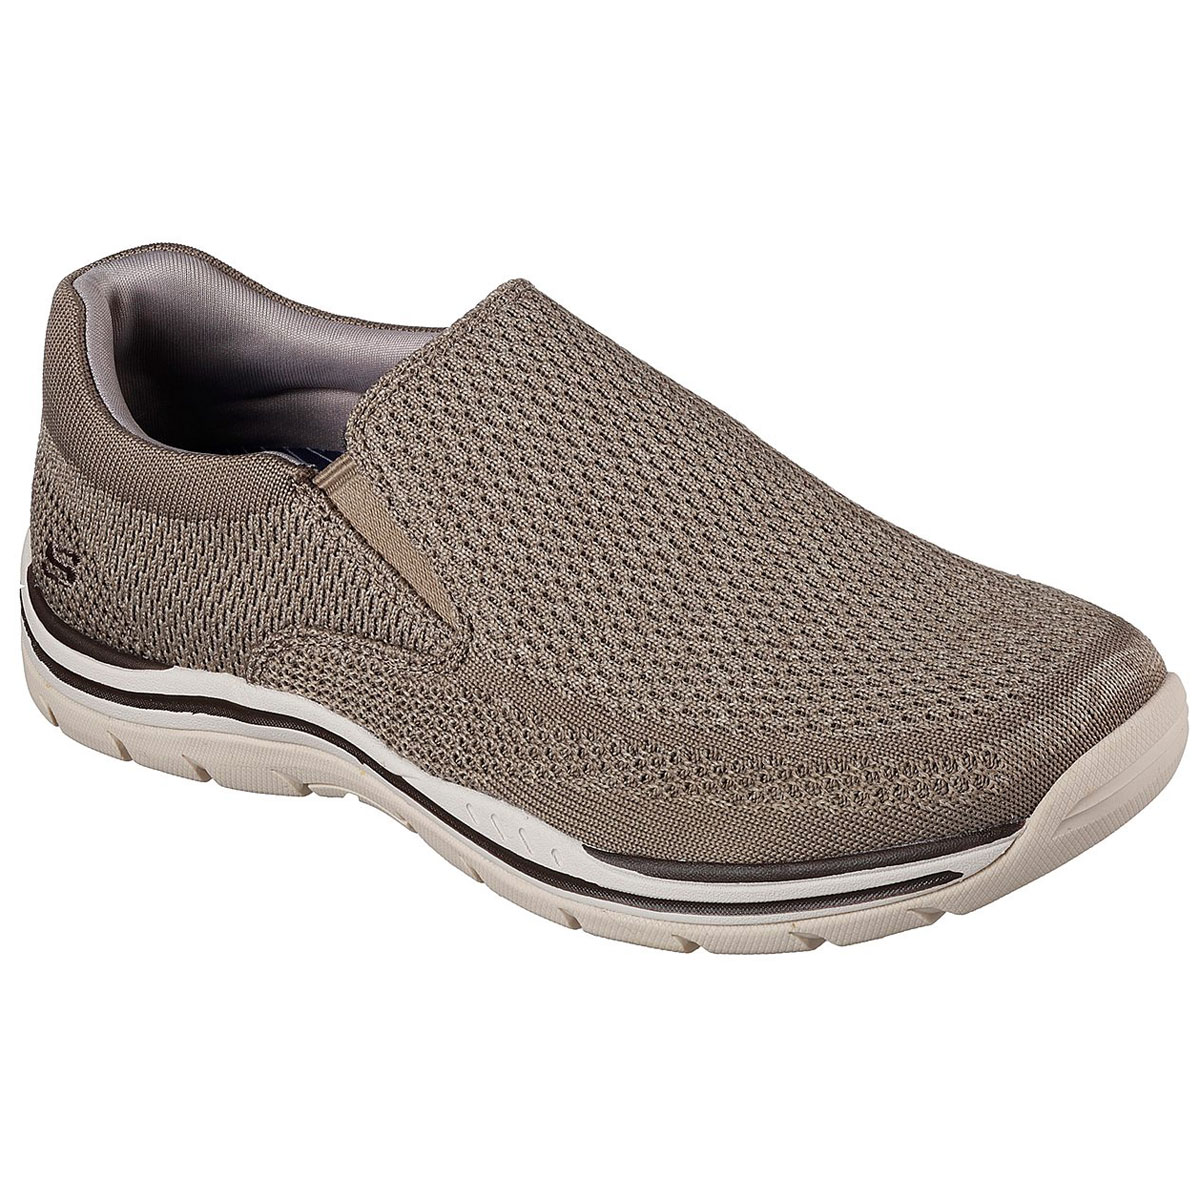 Skechers Men's Gomel Slip On Shoes, Wide - Brown, 9.5